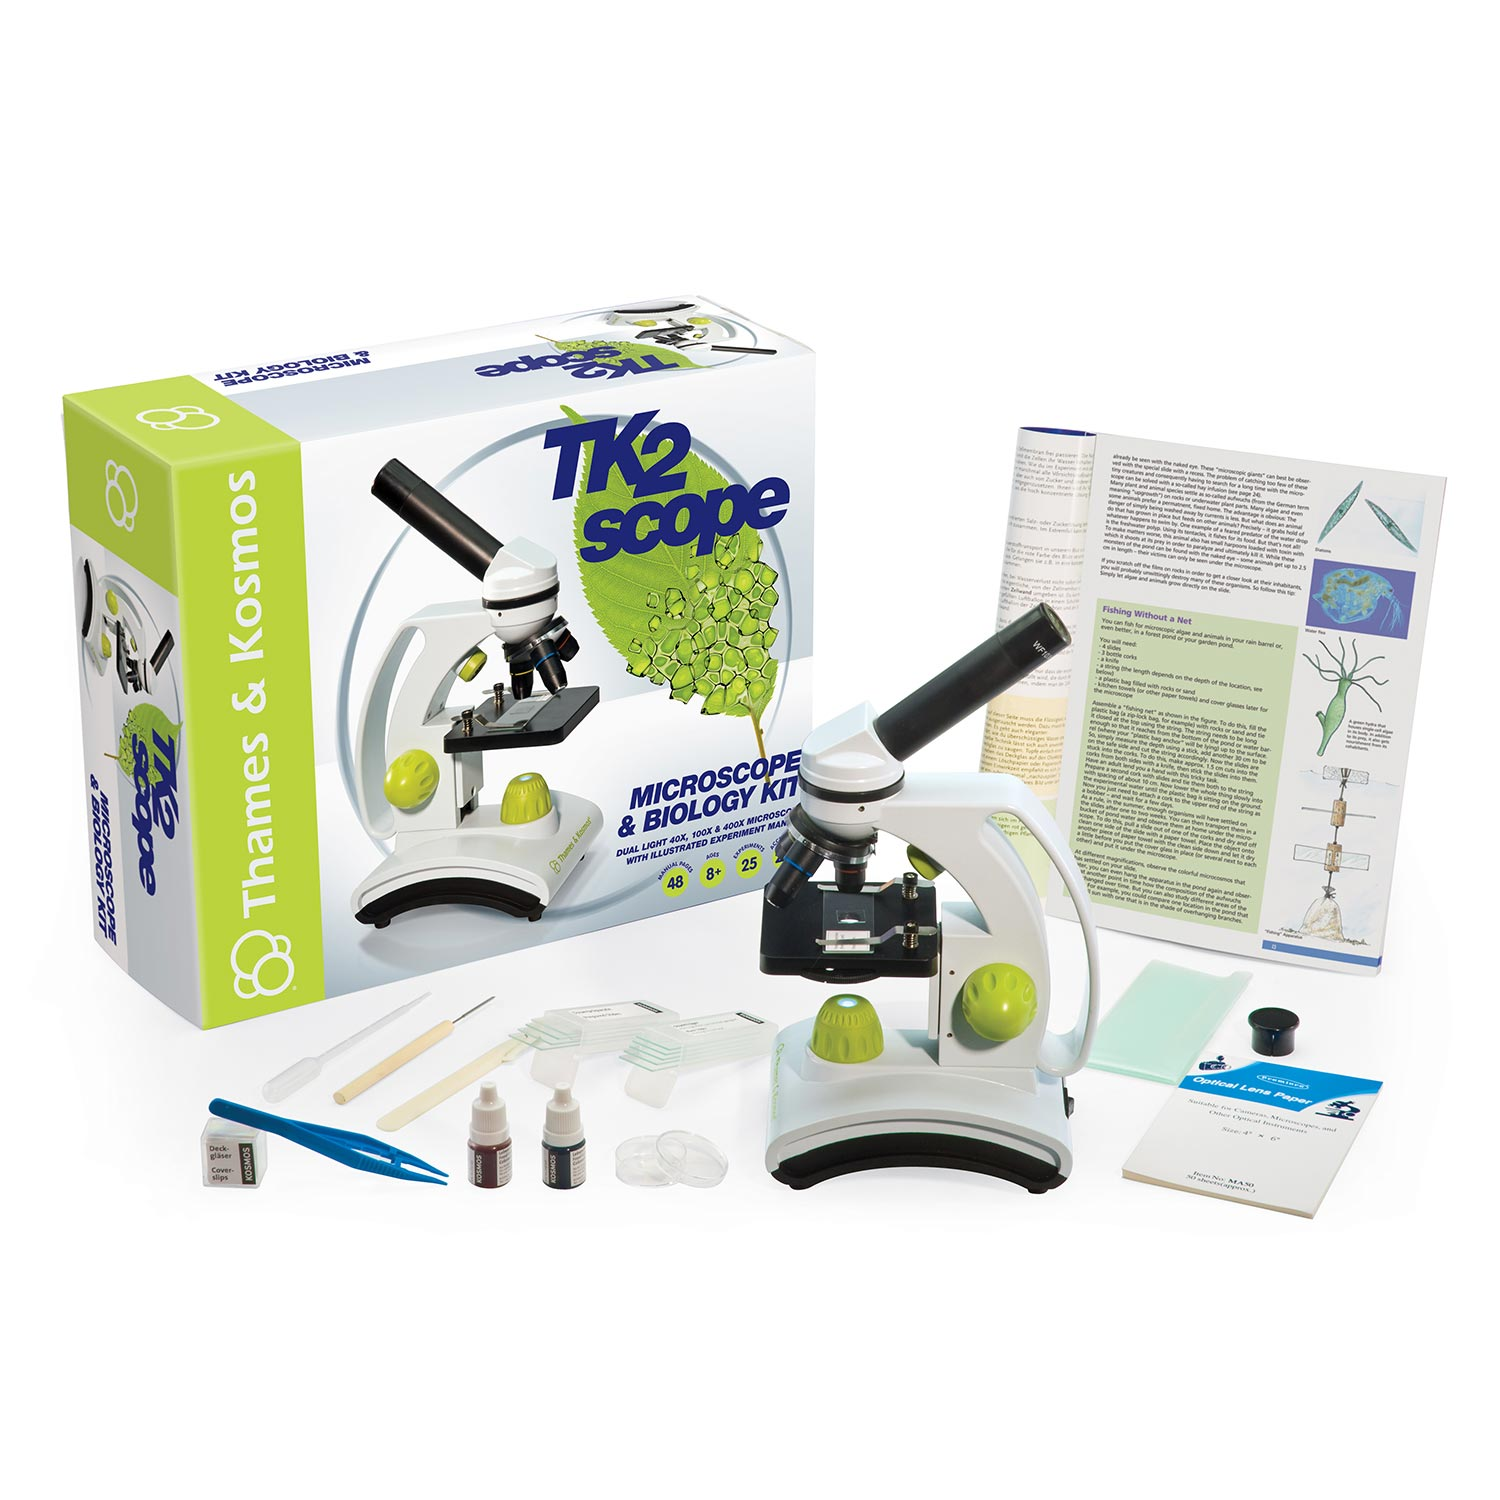 TK2 Microscope and Biology Kit